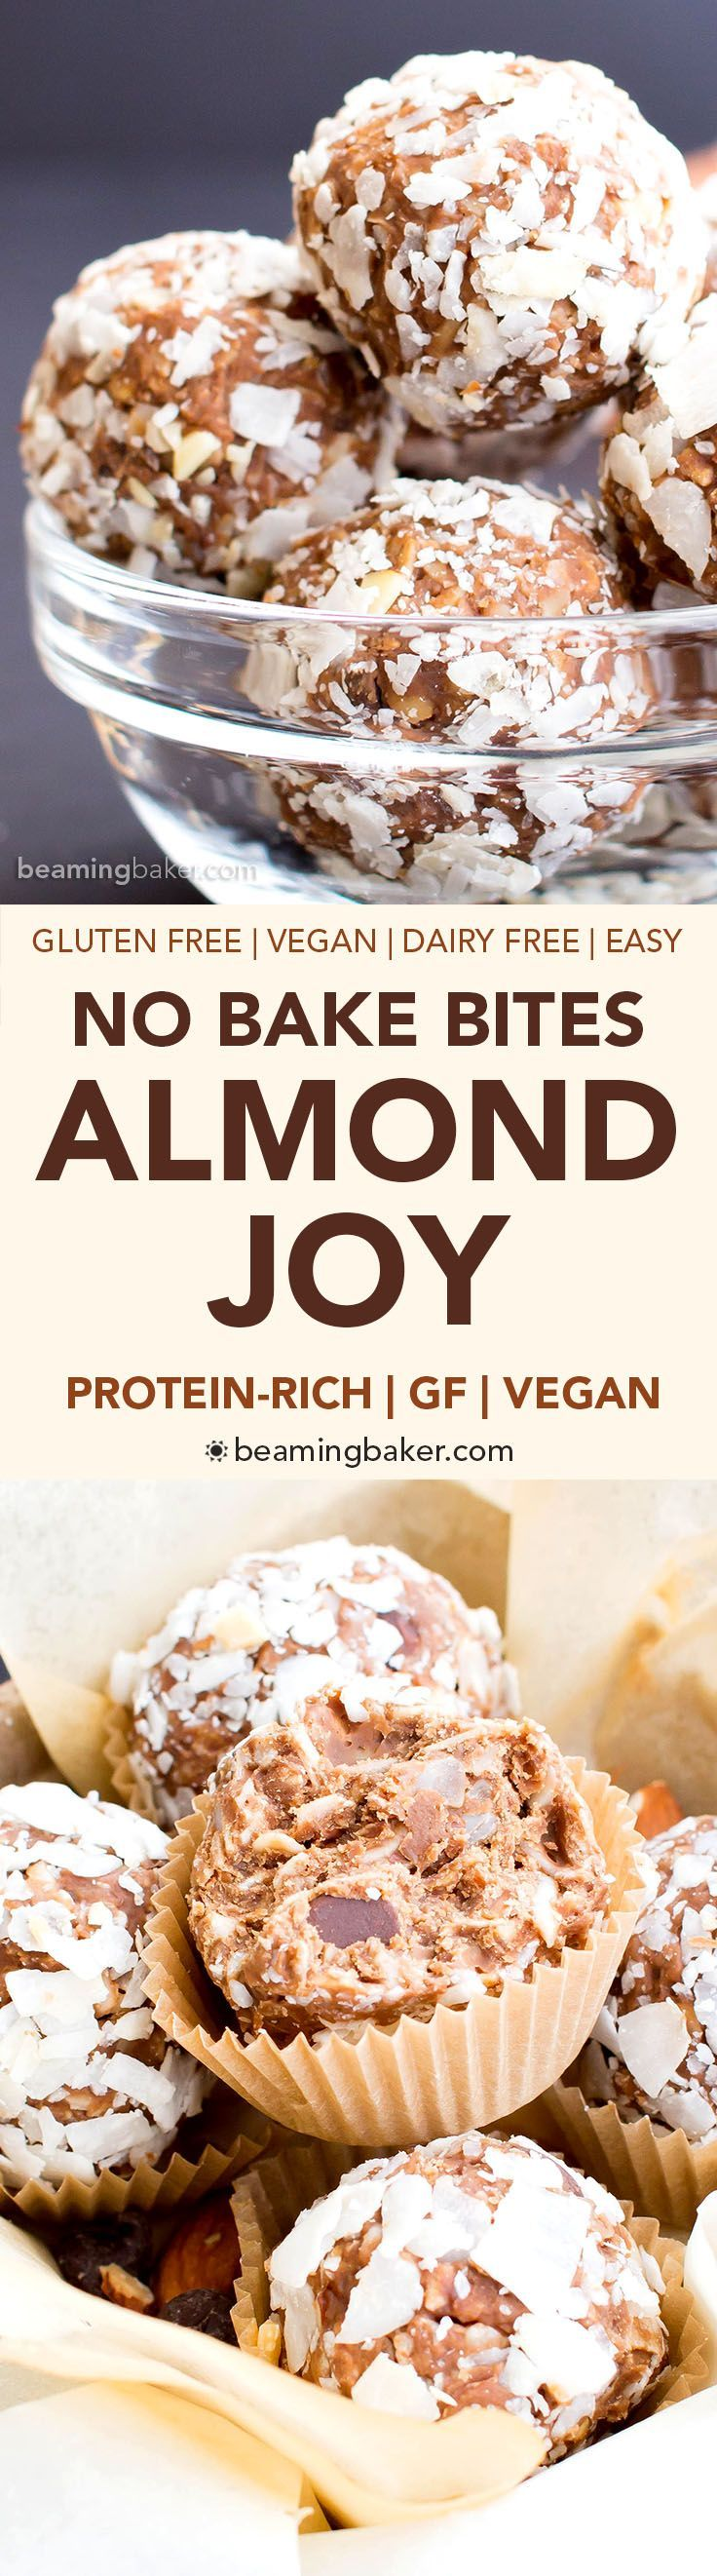 No Bake Gluten Free Almond Joy Energy Bites (V, GF, DF): a one bowl recipe for protein-packed energy bites bursting with Almond Joy flavors, made with simple ingredients. #Vegan #GlutenFree #DairyFree   BeamingBaker.com